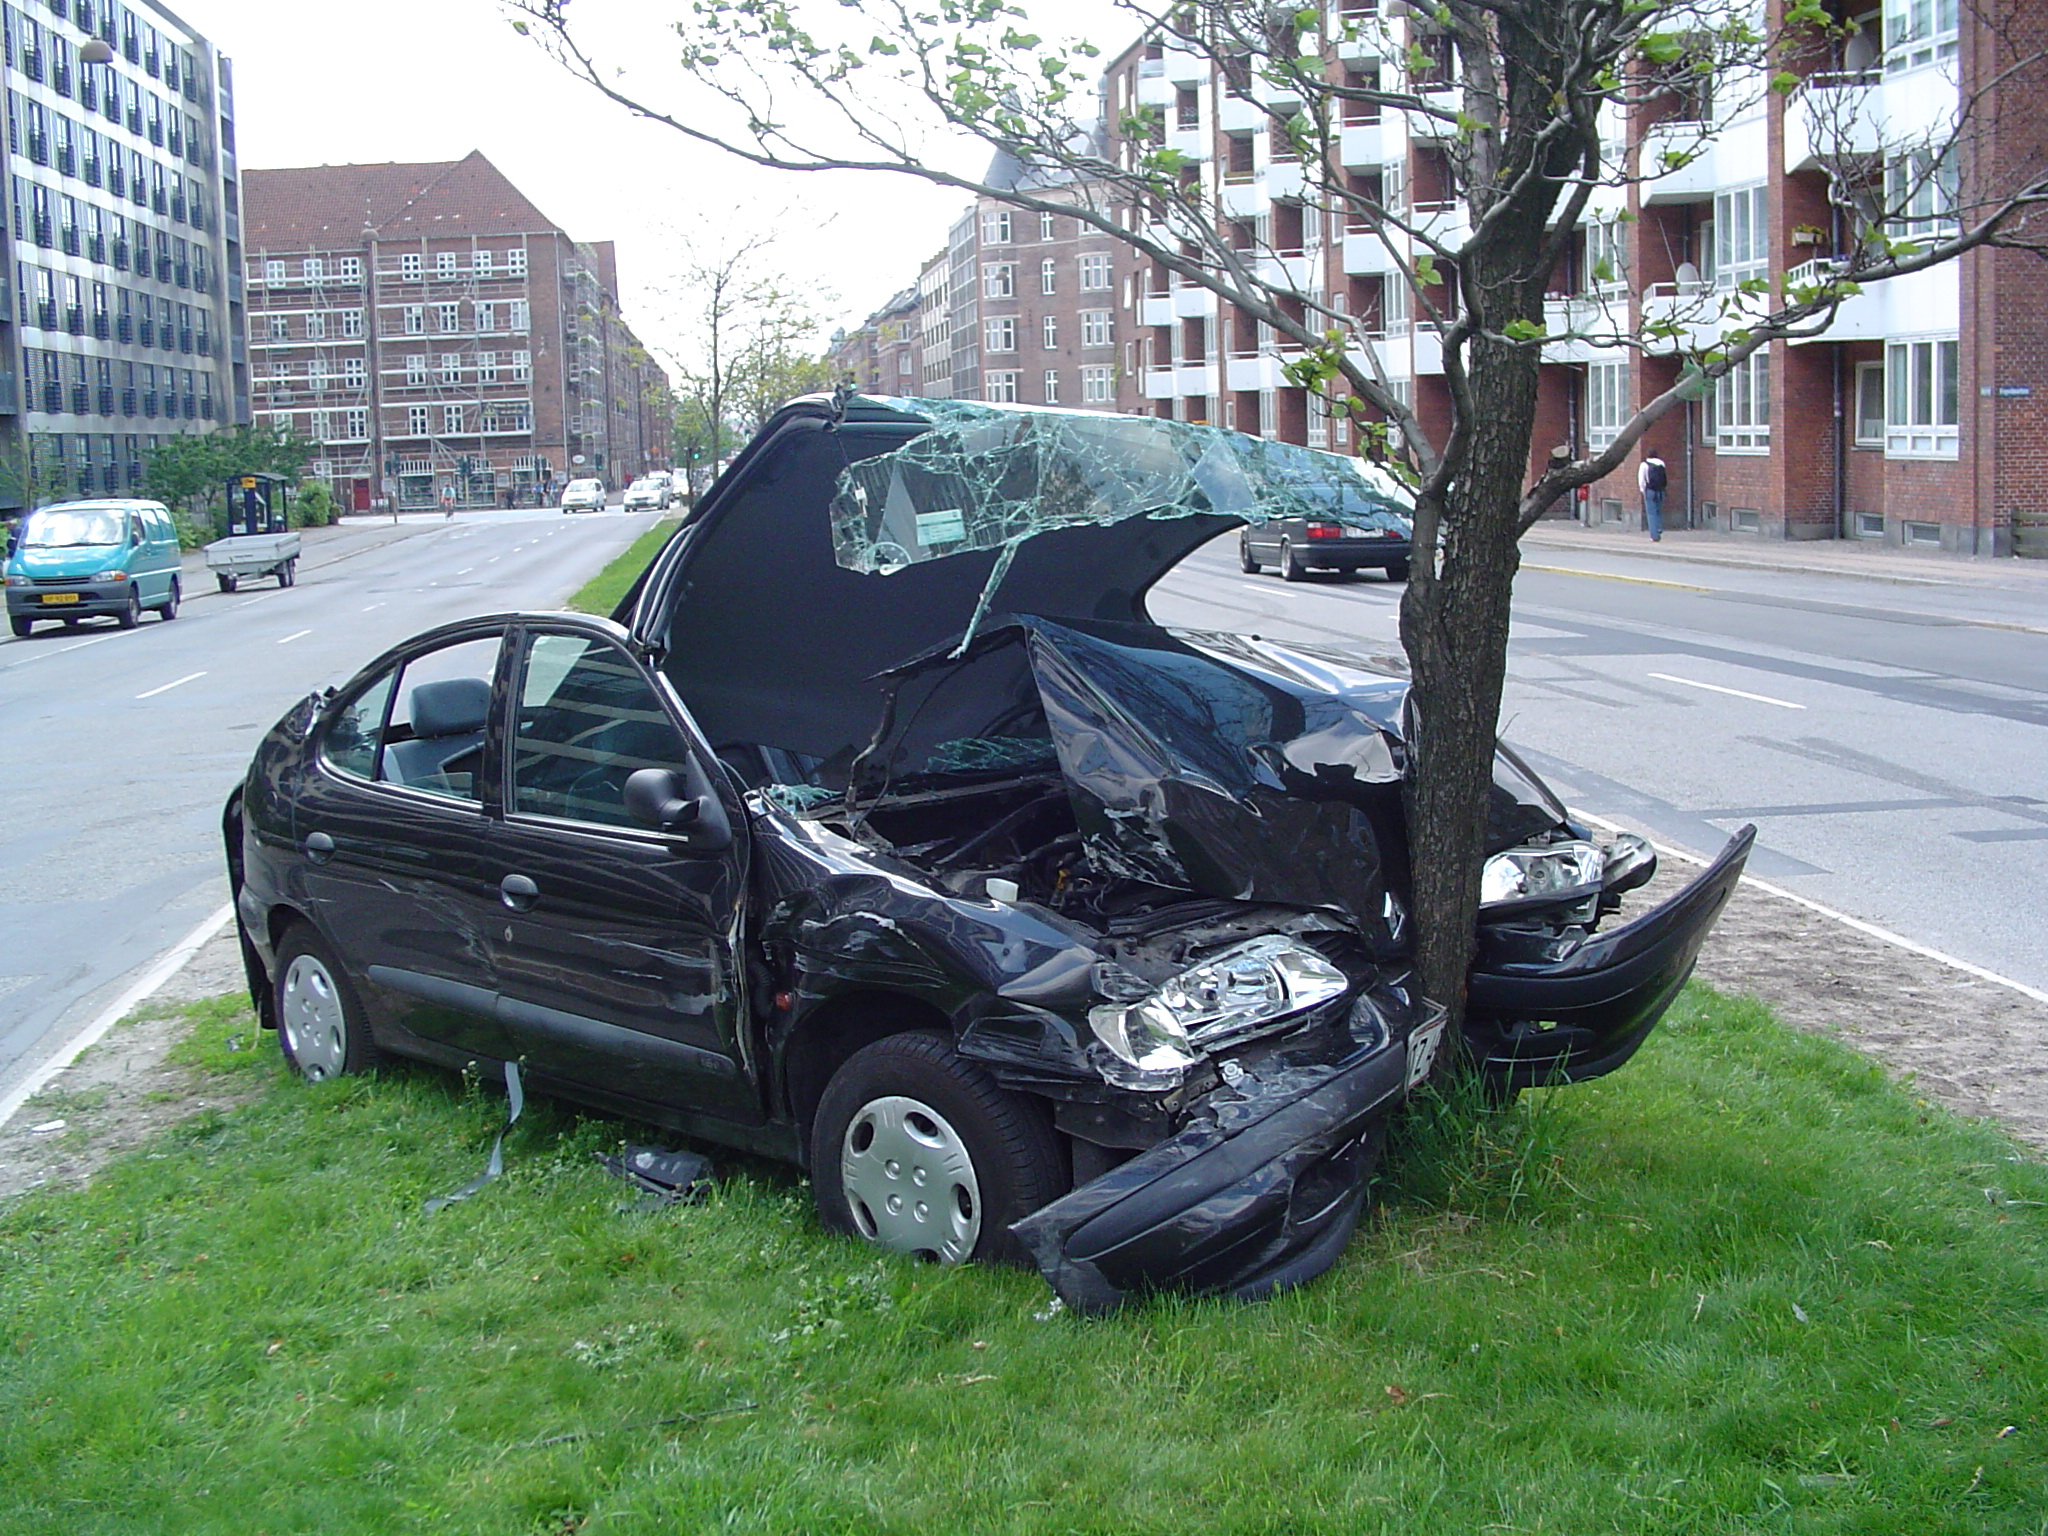 https://i2.wp.com/upload.wikimedia.org/wikipedia/commons/e/e1/Car_crash_1.jpg